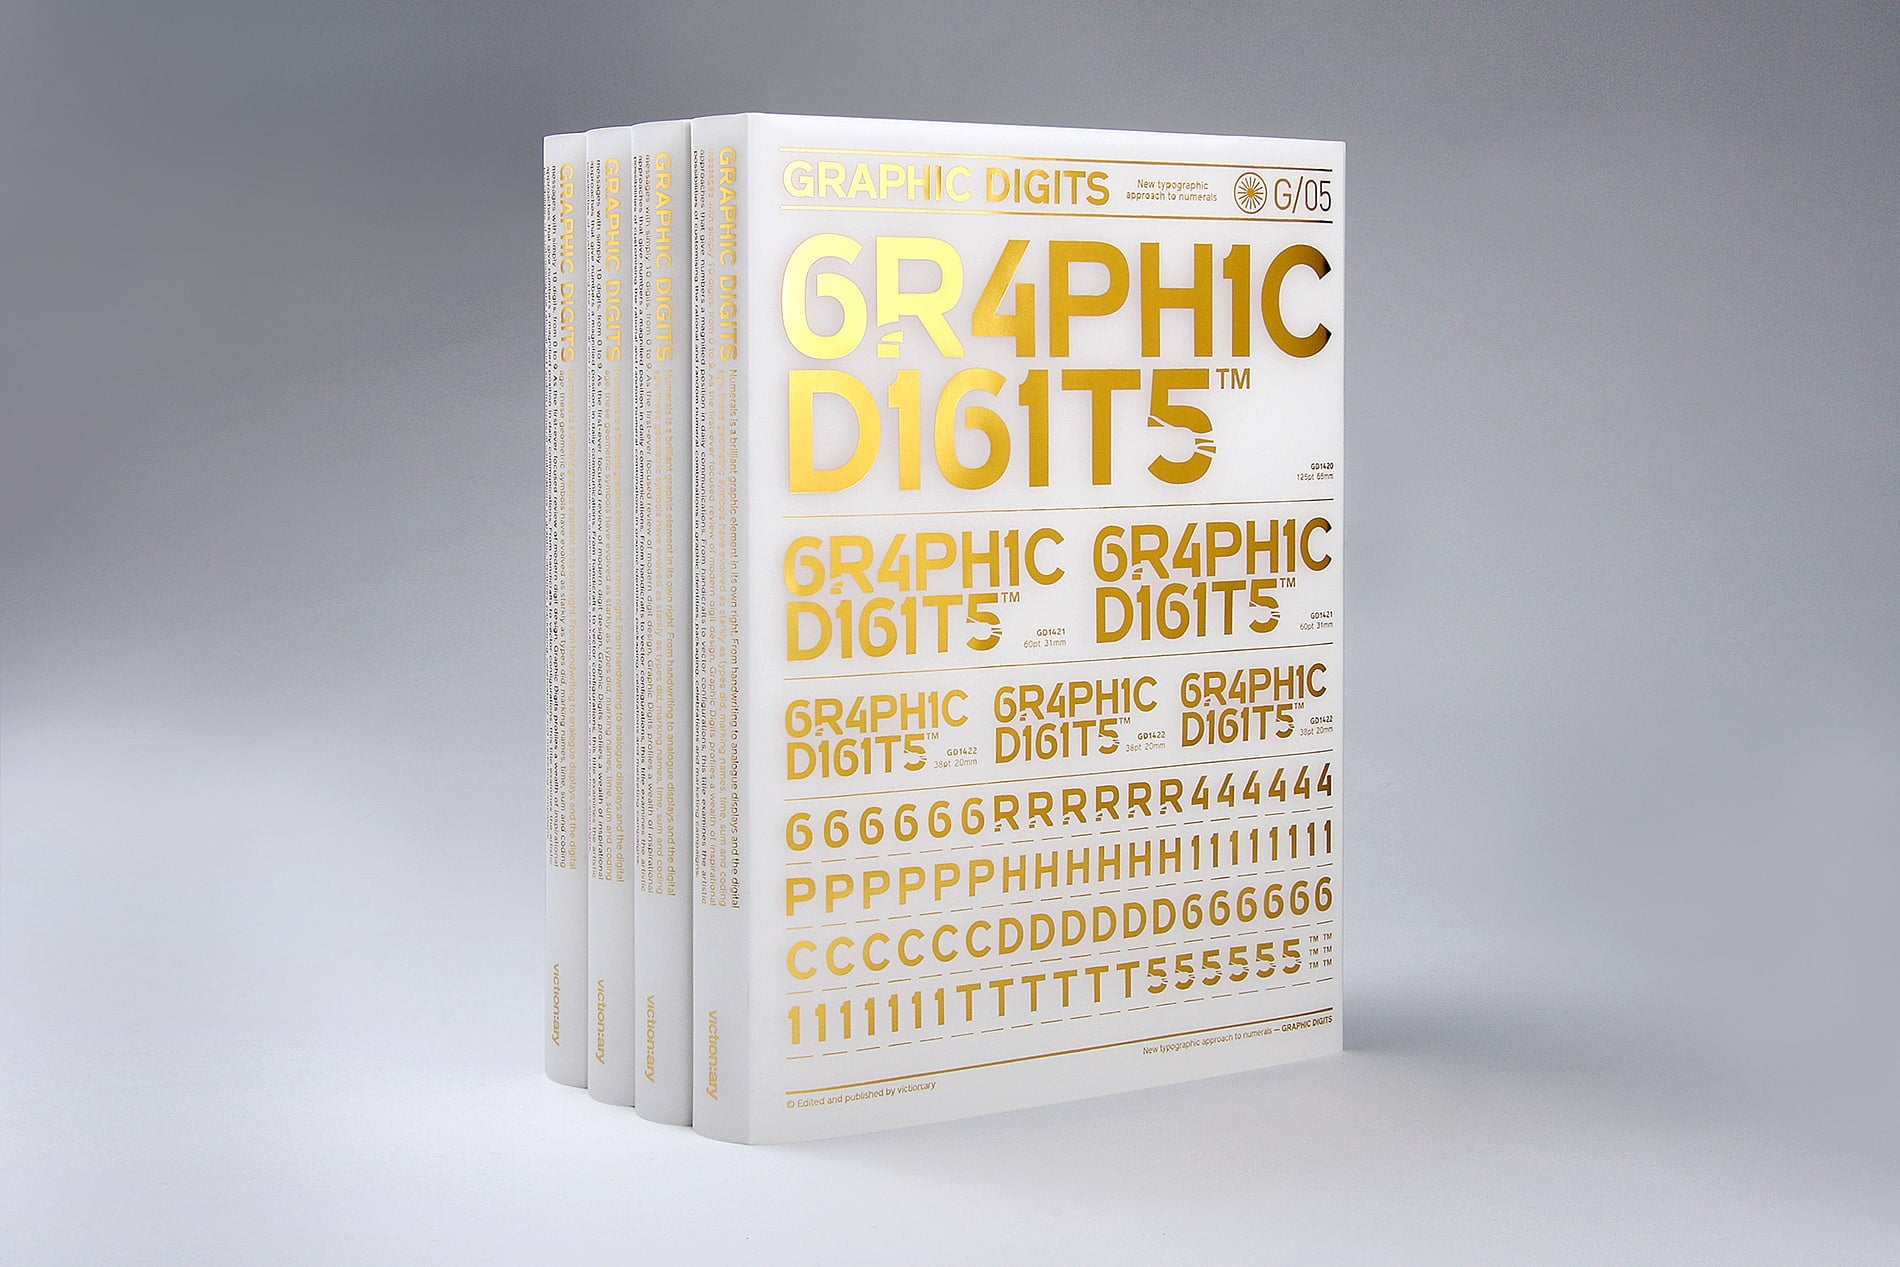 Graphic Digits